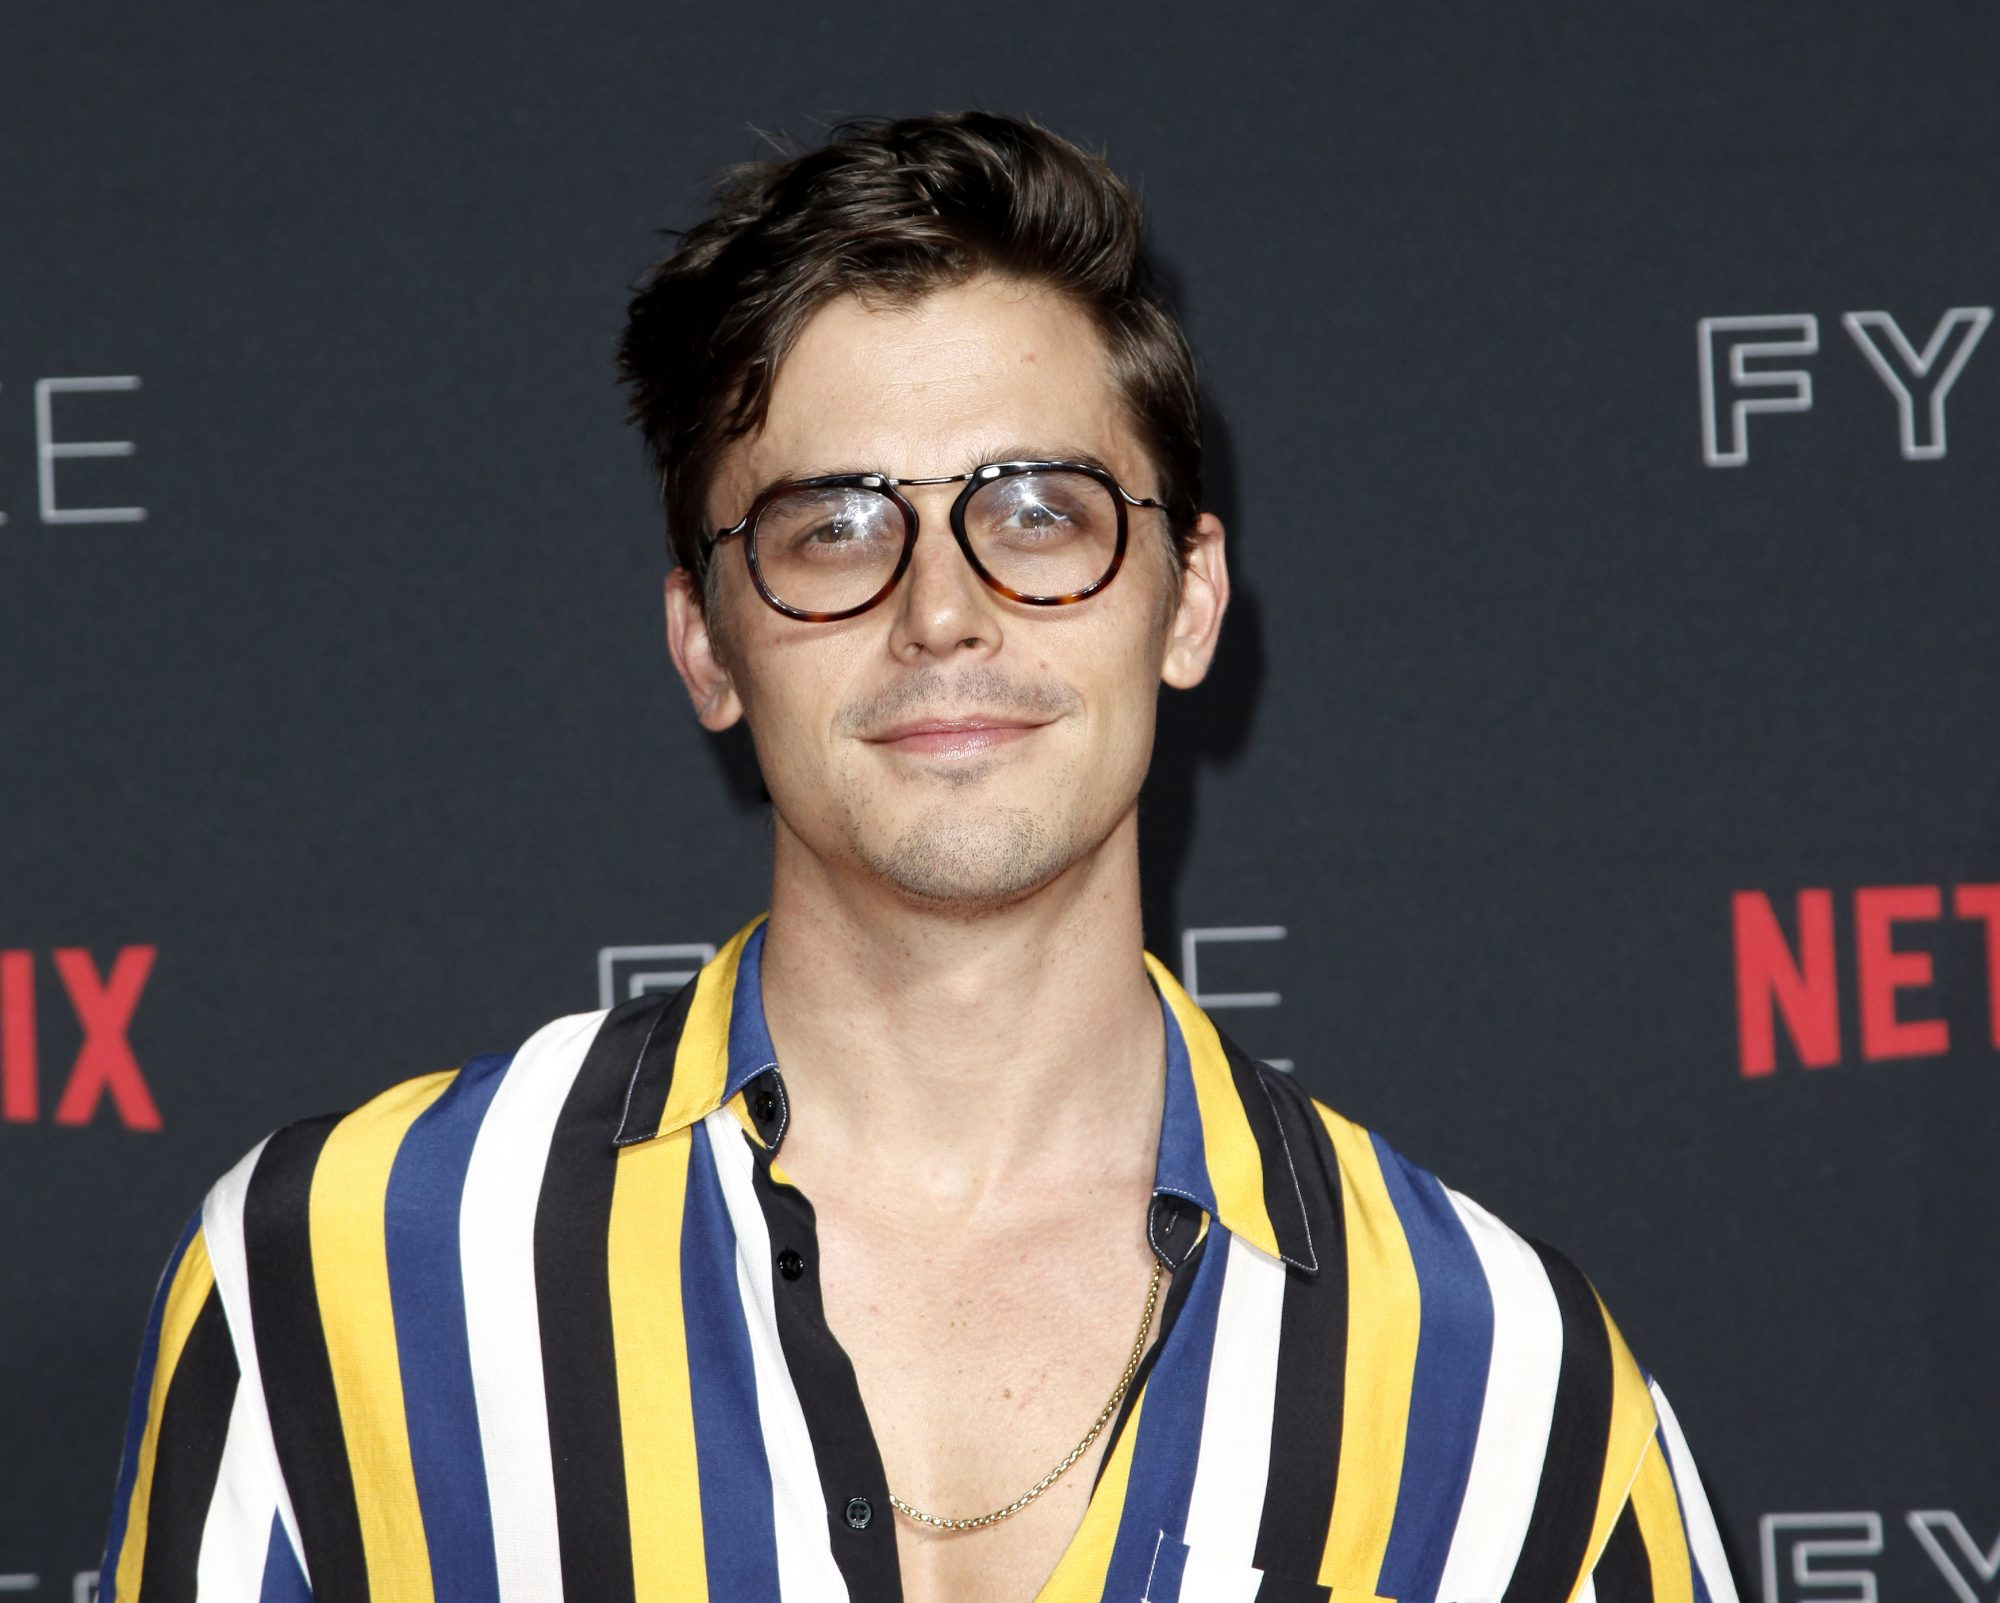 Everything We Know About Antoni Porowski's NYC Restaurant